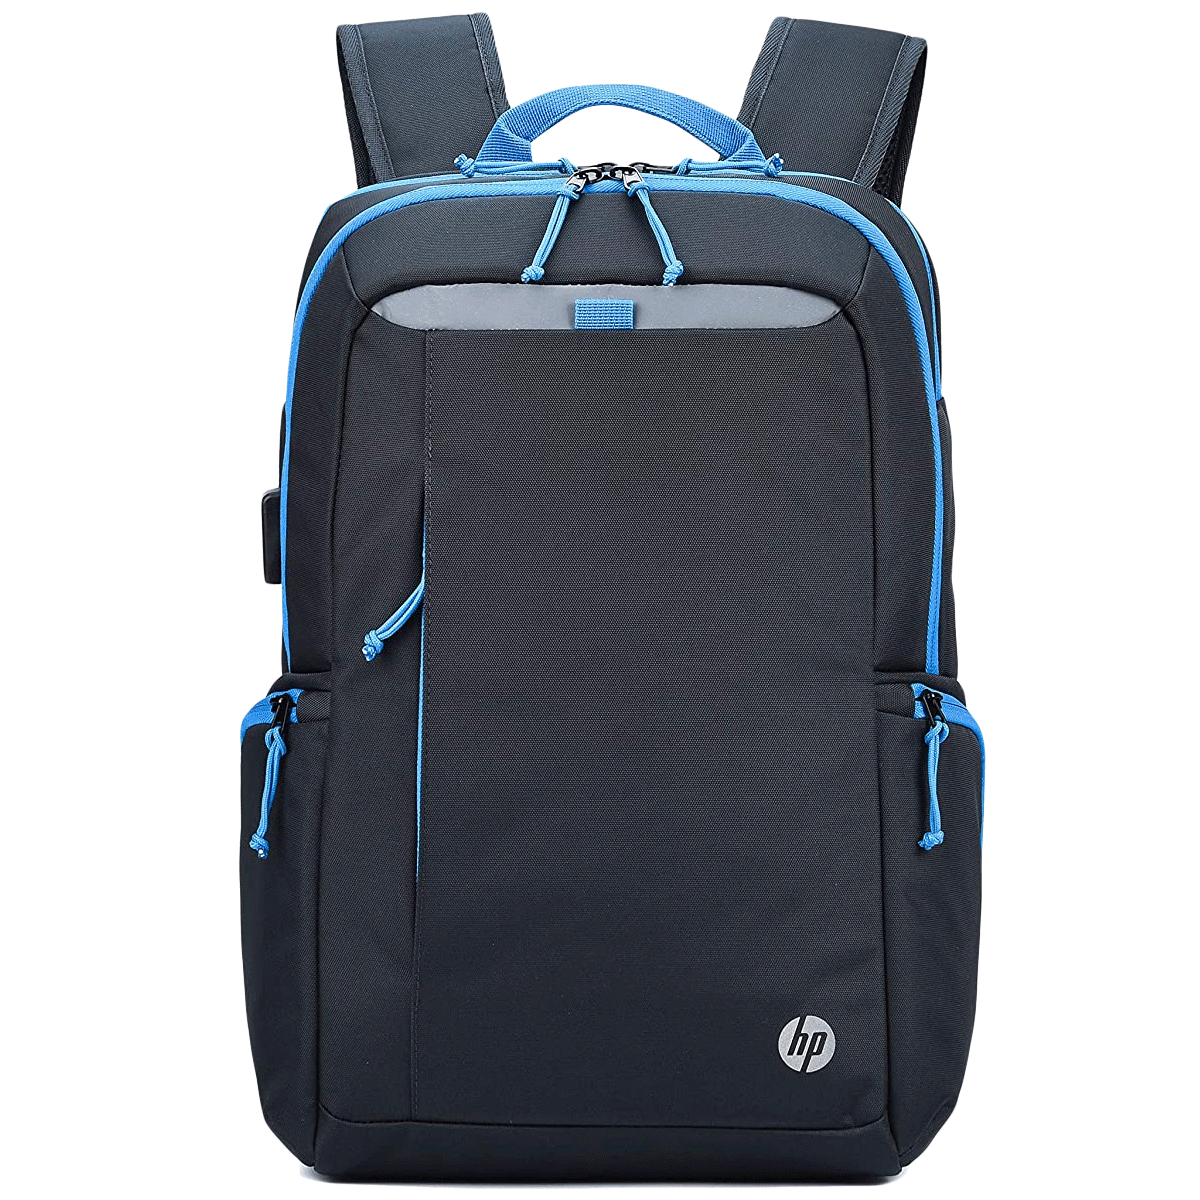 HP Lightweight 500 17 Litres 600D Gucci Polyester Backpack for 15.6 Inch Laptop (USB Charging Plug, 1B3M8AA, Black)